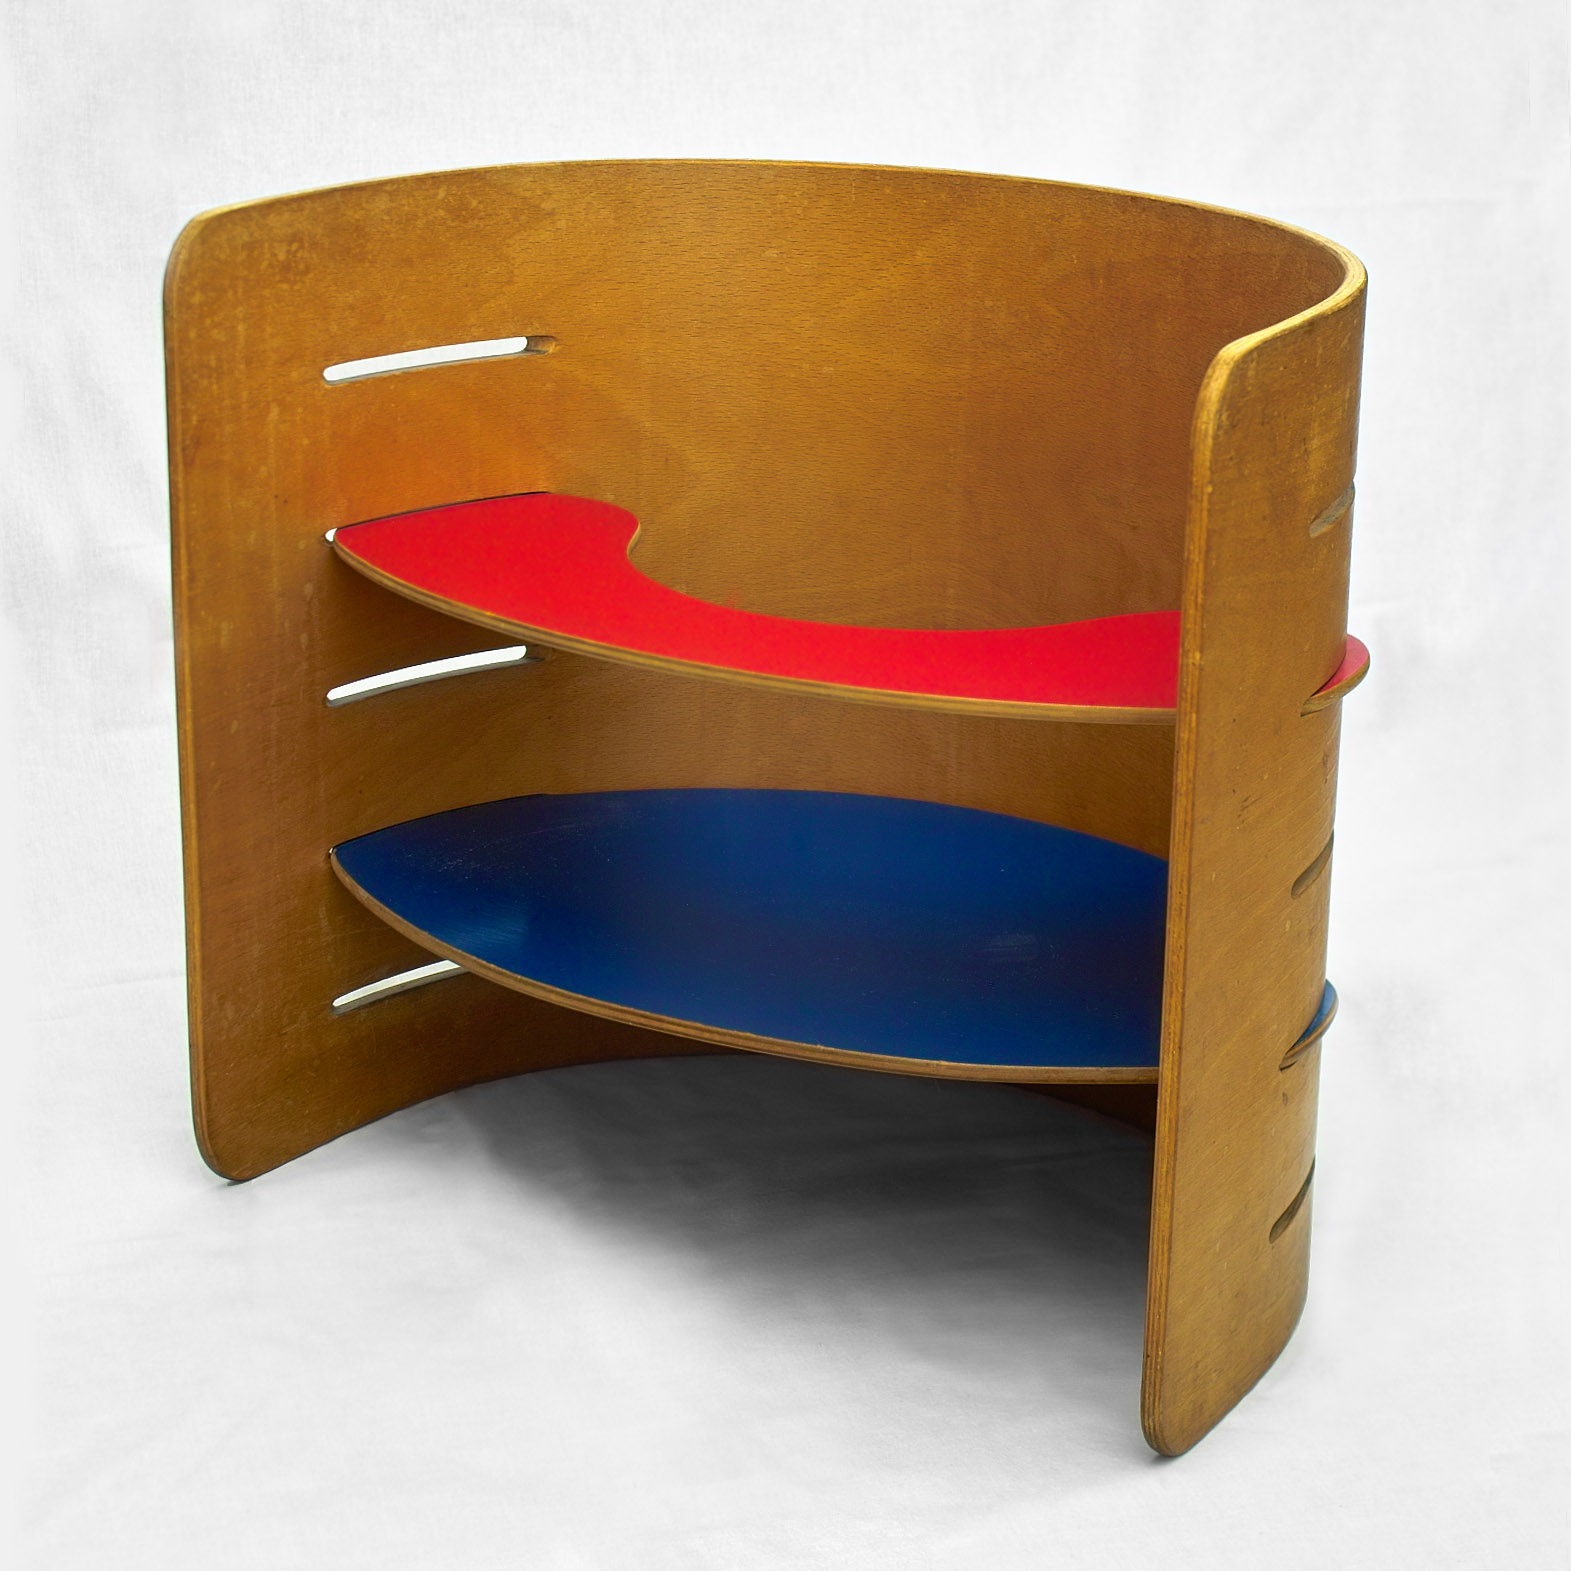 Kristian Vedel: Multifunctional children's furniture in laminated beech (Design: 1951, Manufacture: 1956). Manufacturer: Torben Ørskov & Co. Silver medal at La Triennale di Milano, 1957.